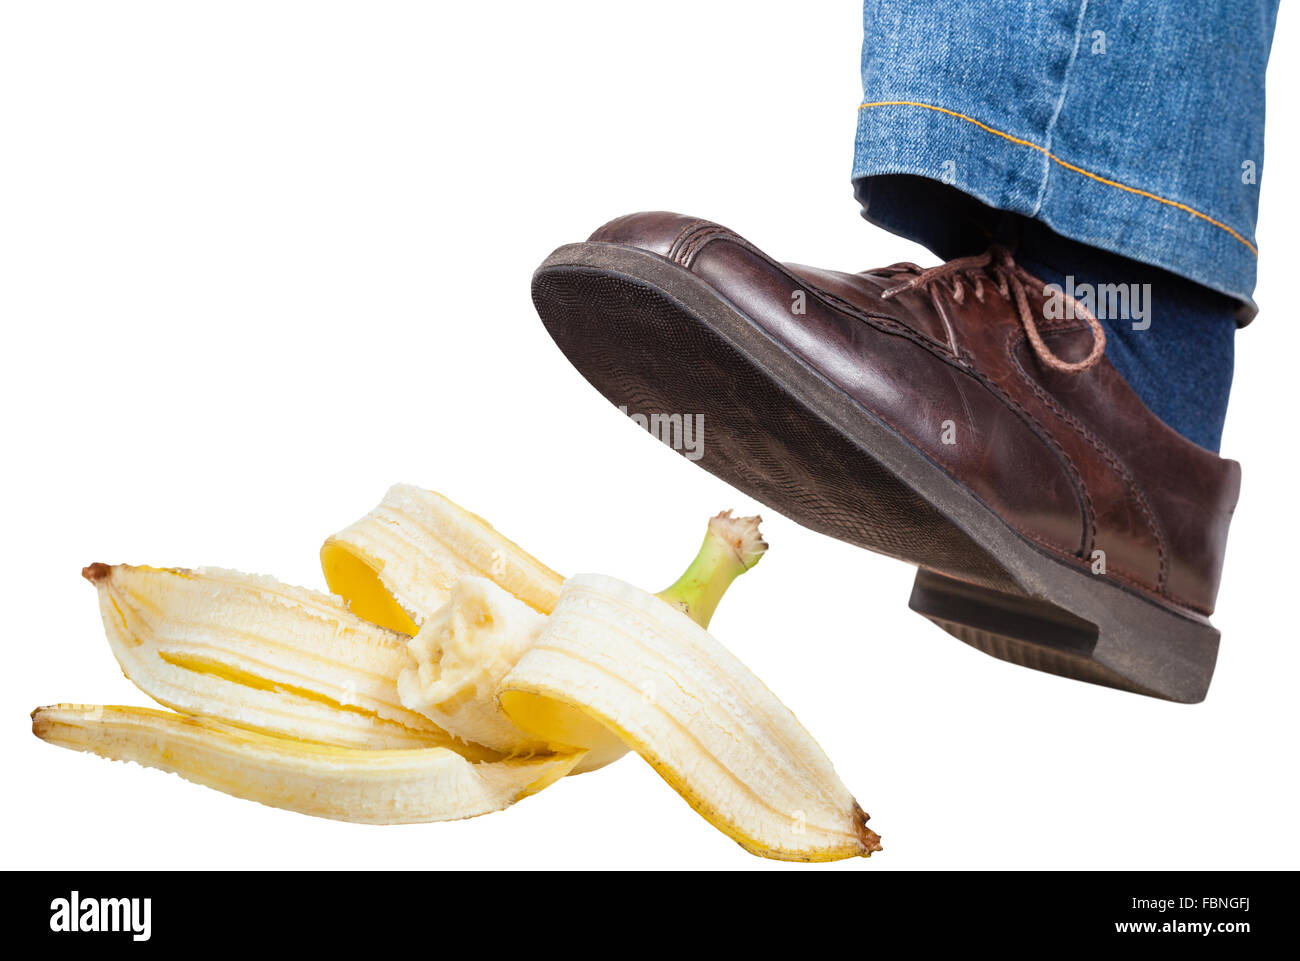 male left foot in jeans and brown shoe slips on a banana peel isolated on white background Stock Photo